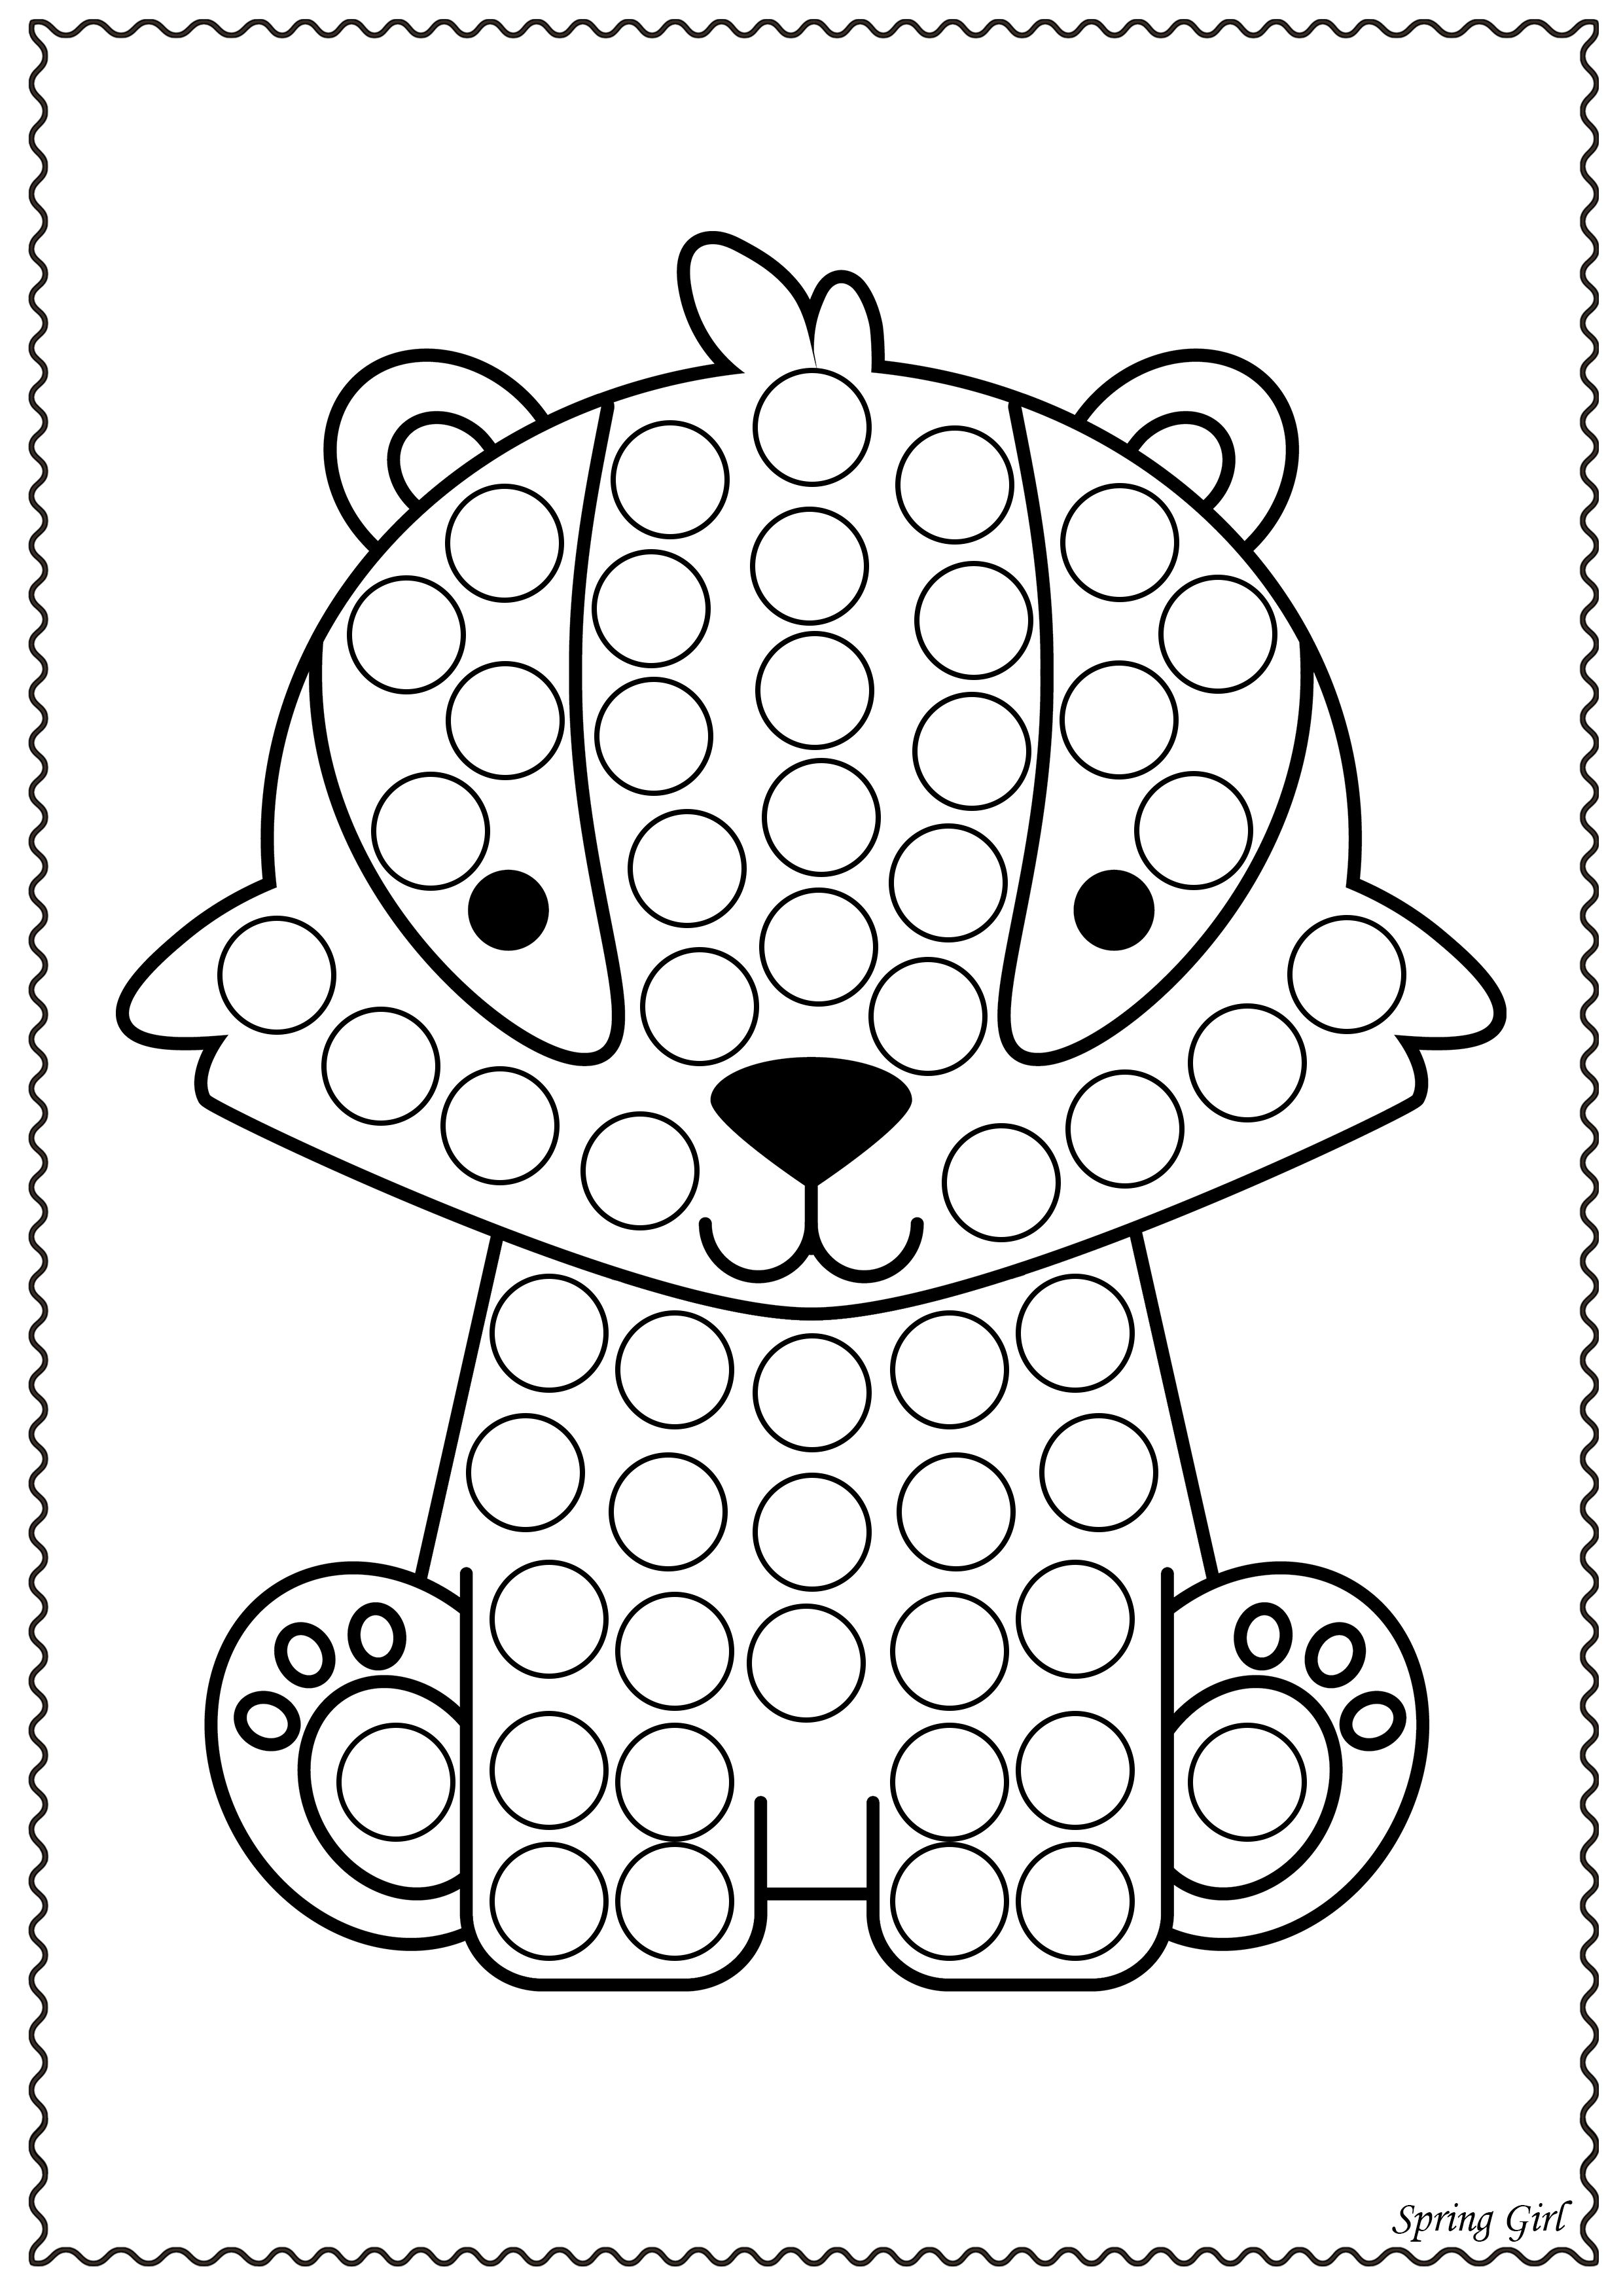 Do A Dot Animals Dot Marker Printables In